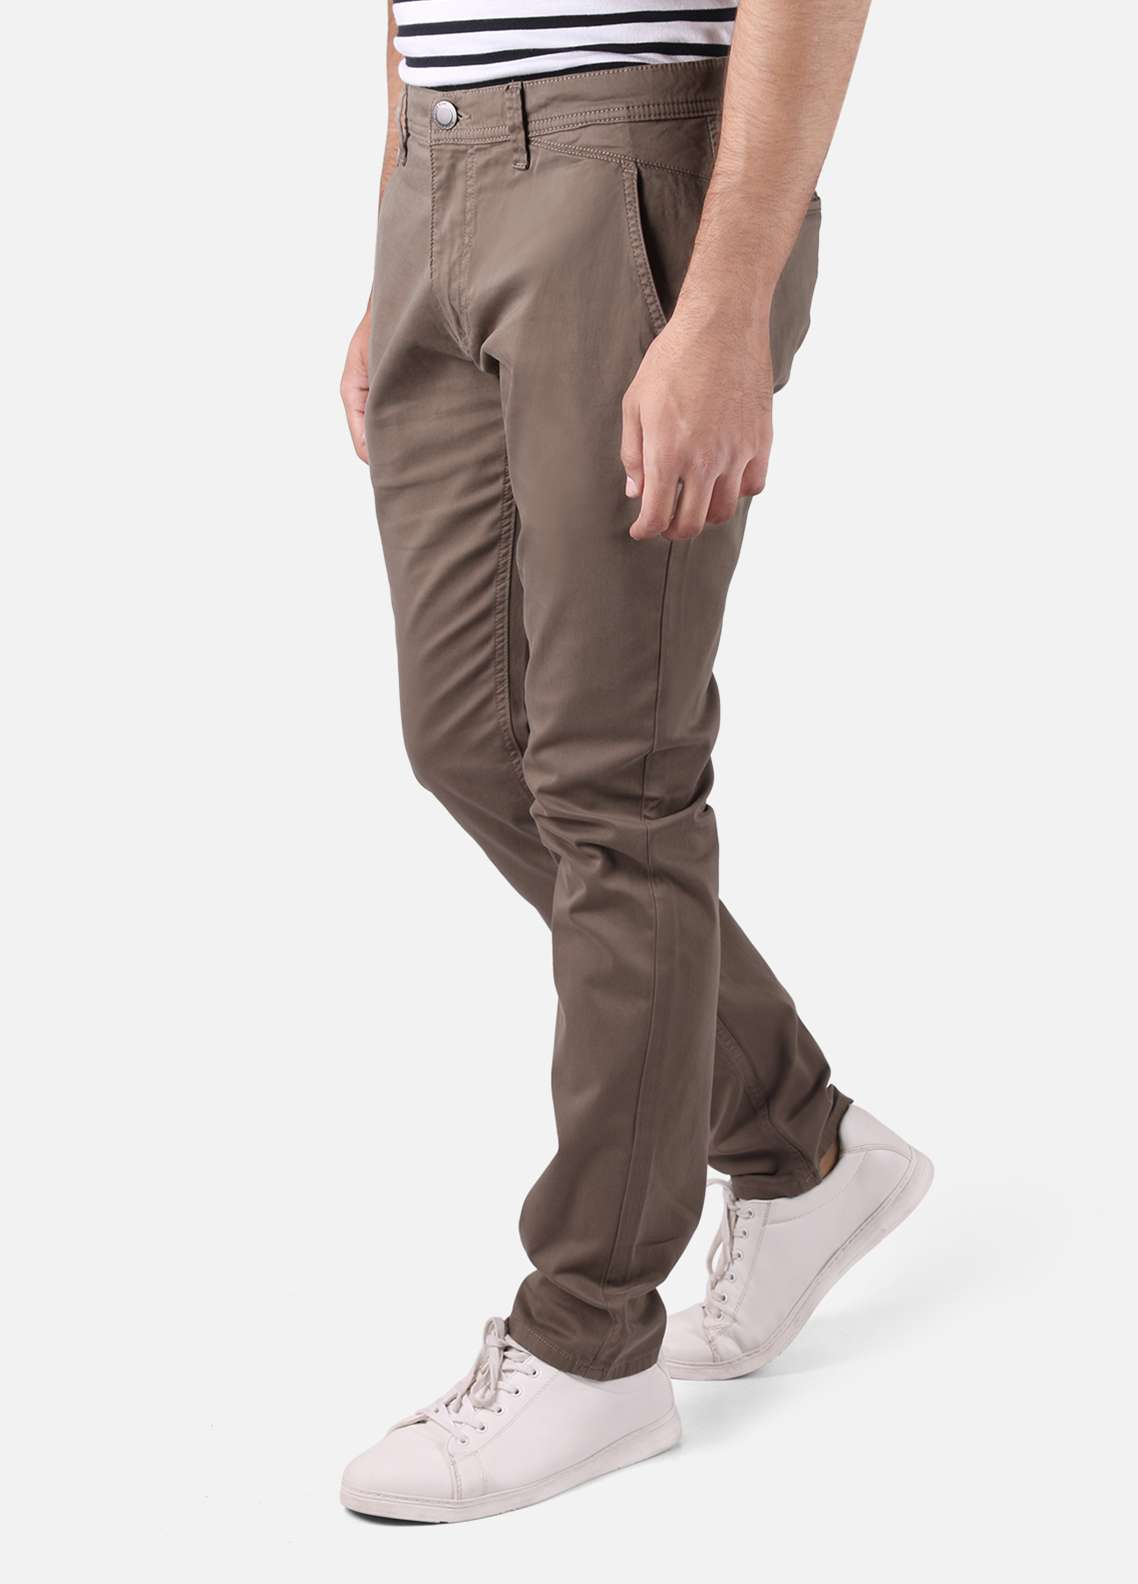 Furor  Chino Men Pants - Olive FRM18C FMBCP18-009